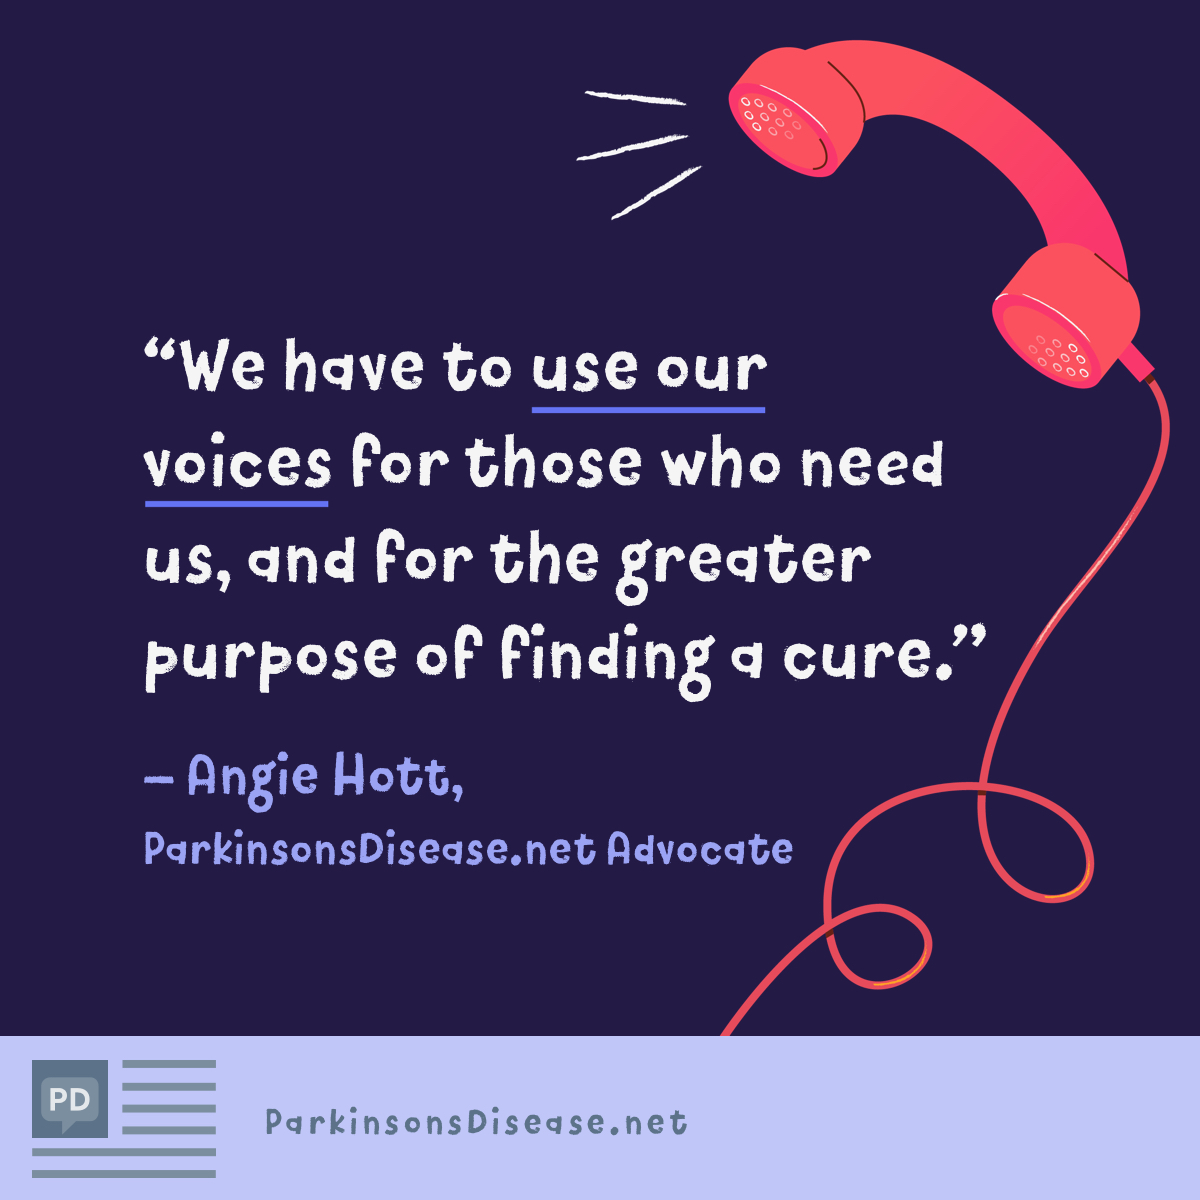 We have to use our voices for those who need us, and for the greater purpose of finding a cure.-Angie Hott, Advocate